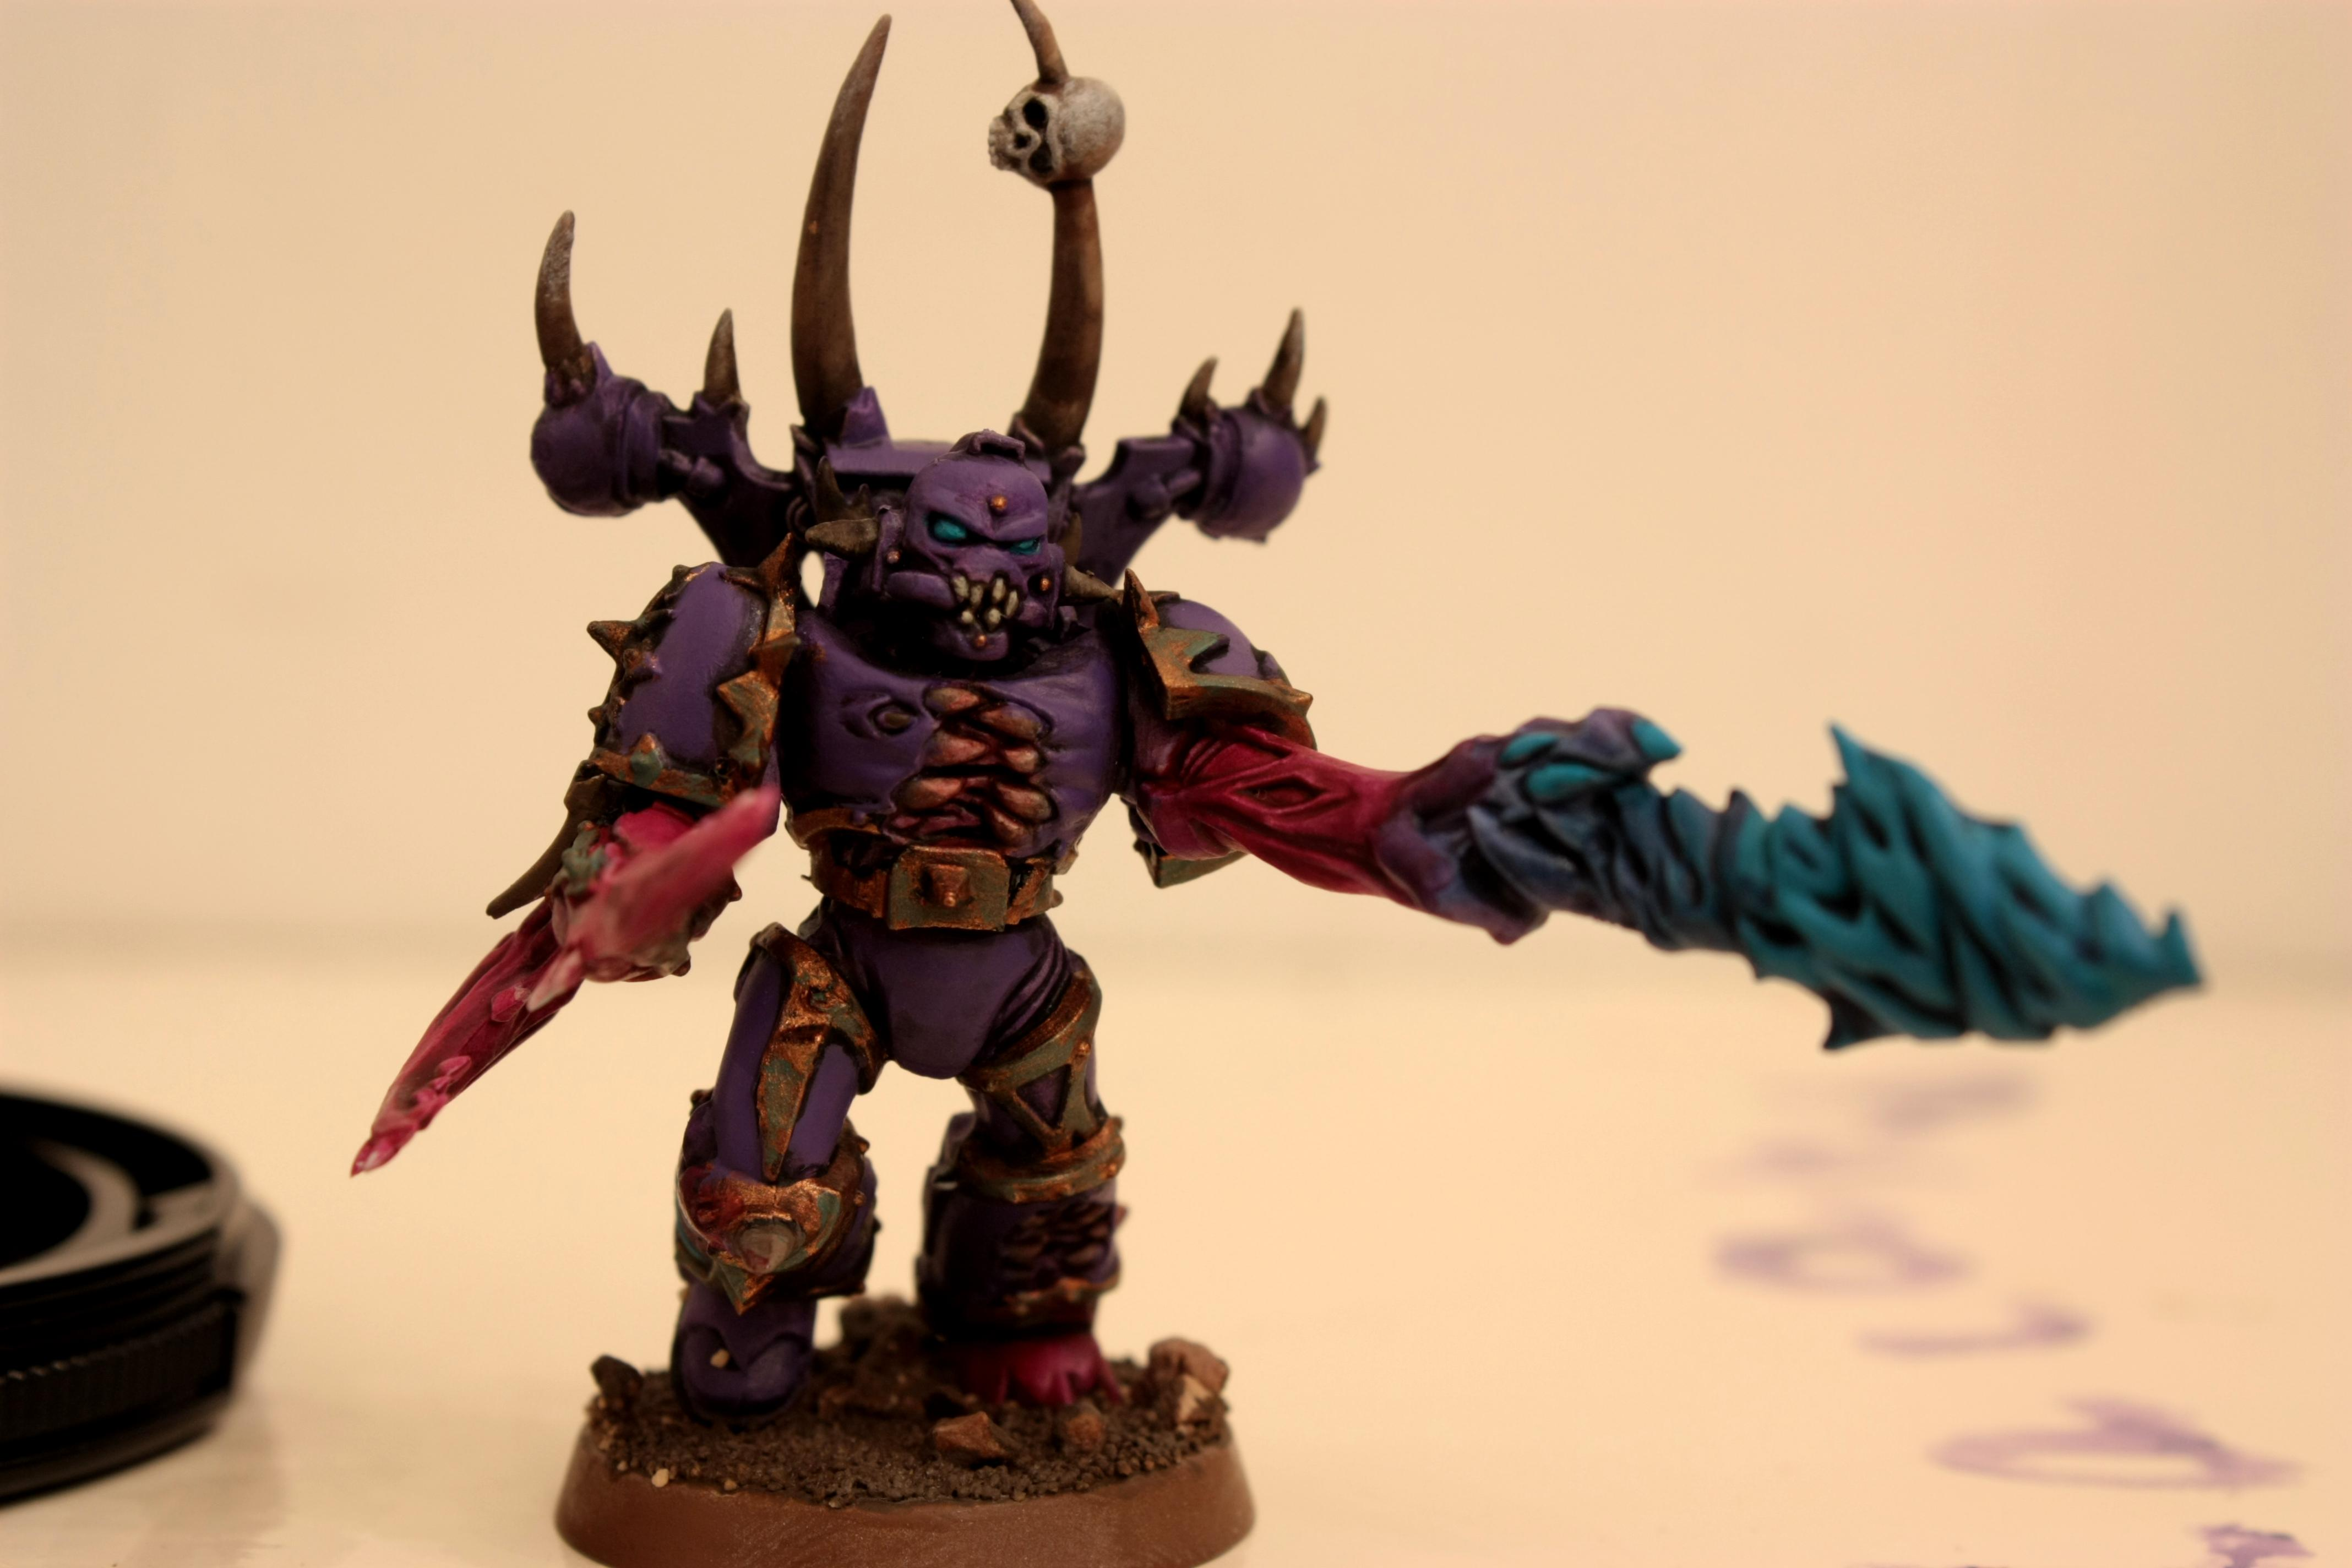 Chaos Space Marines, Emperor's Children, Possessed Chaos Space Marines, Slaanesh